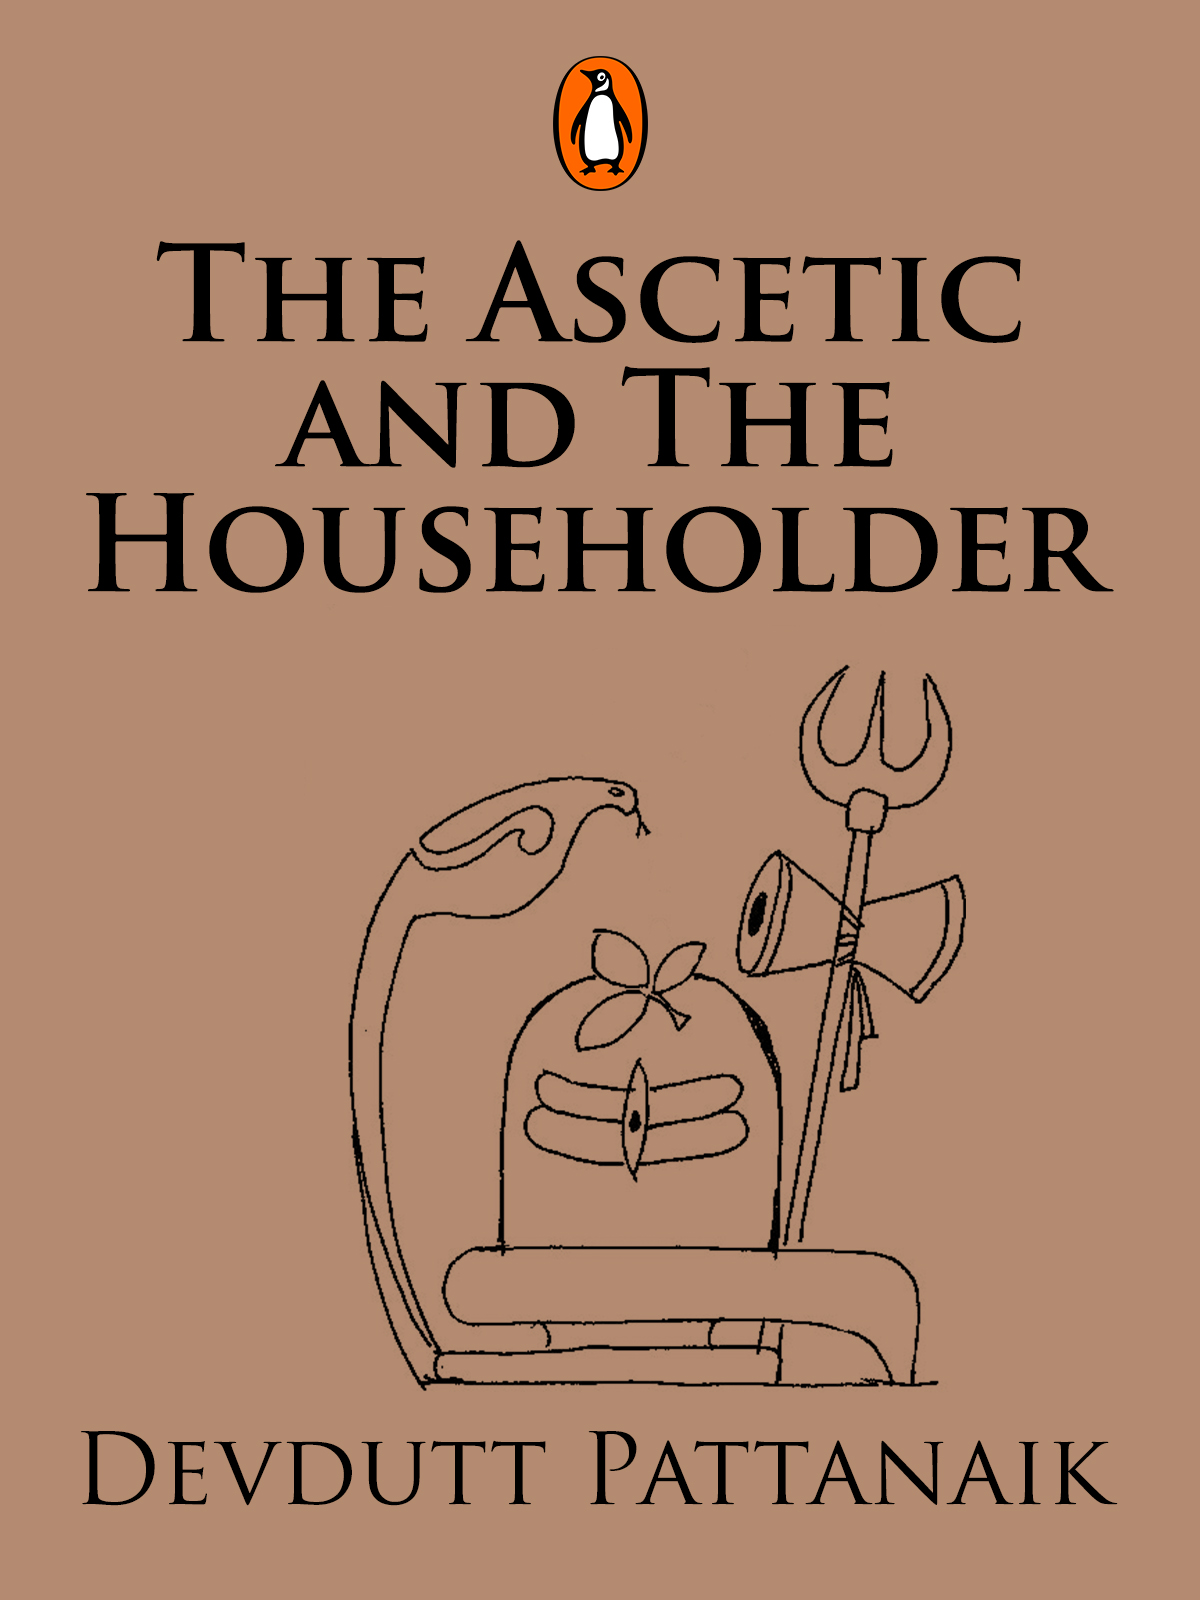 The Ascetic and The Householder